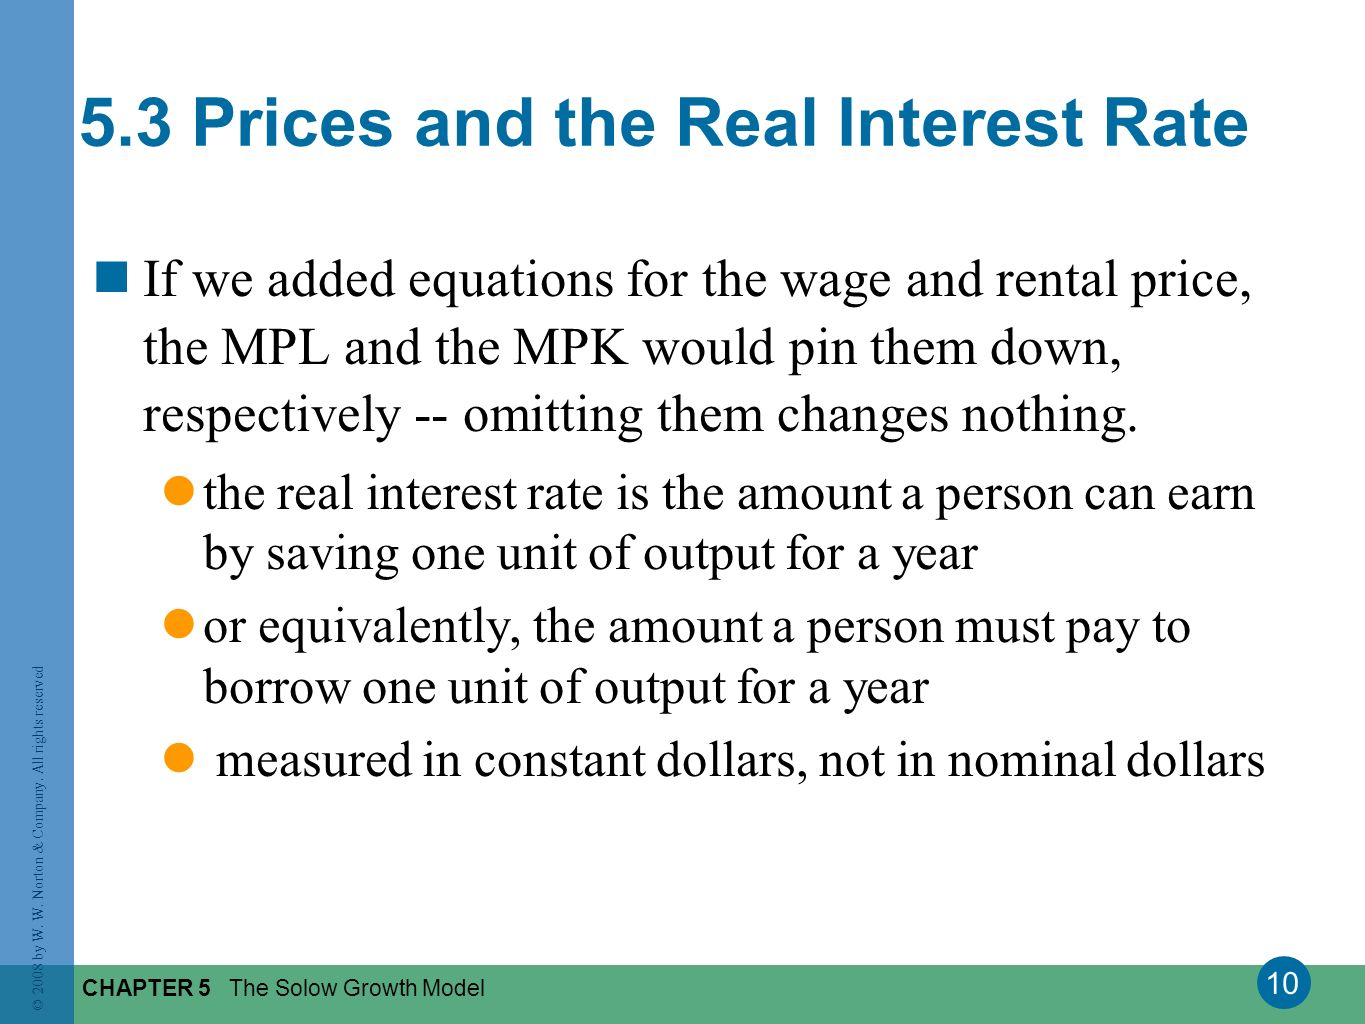 5.3 Prices and the Real Interest Rate